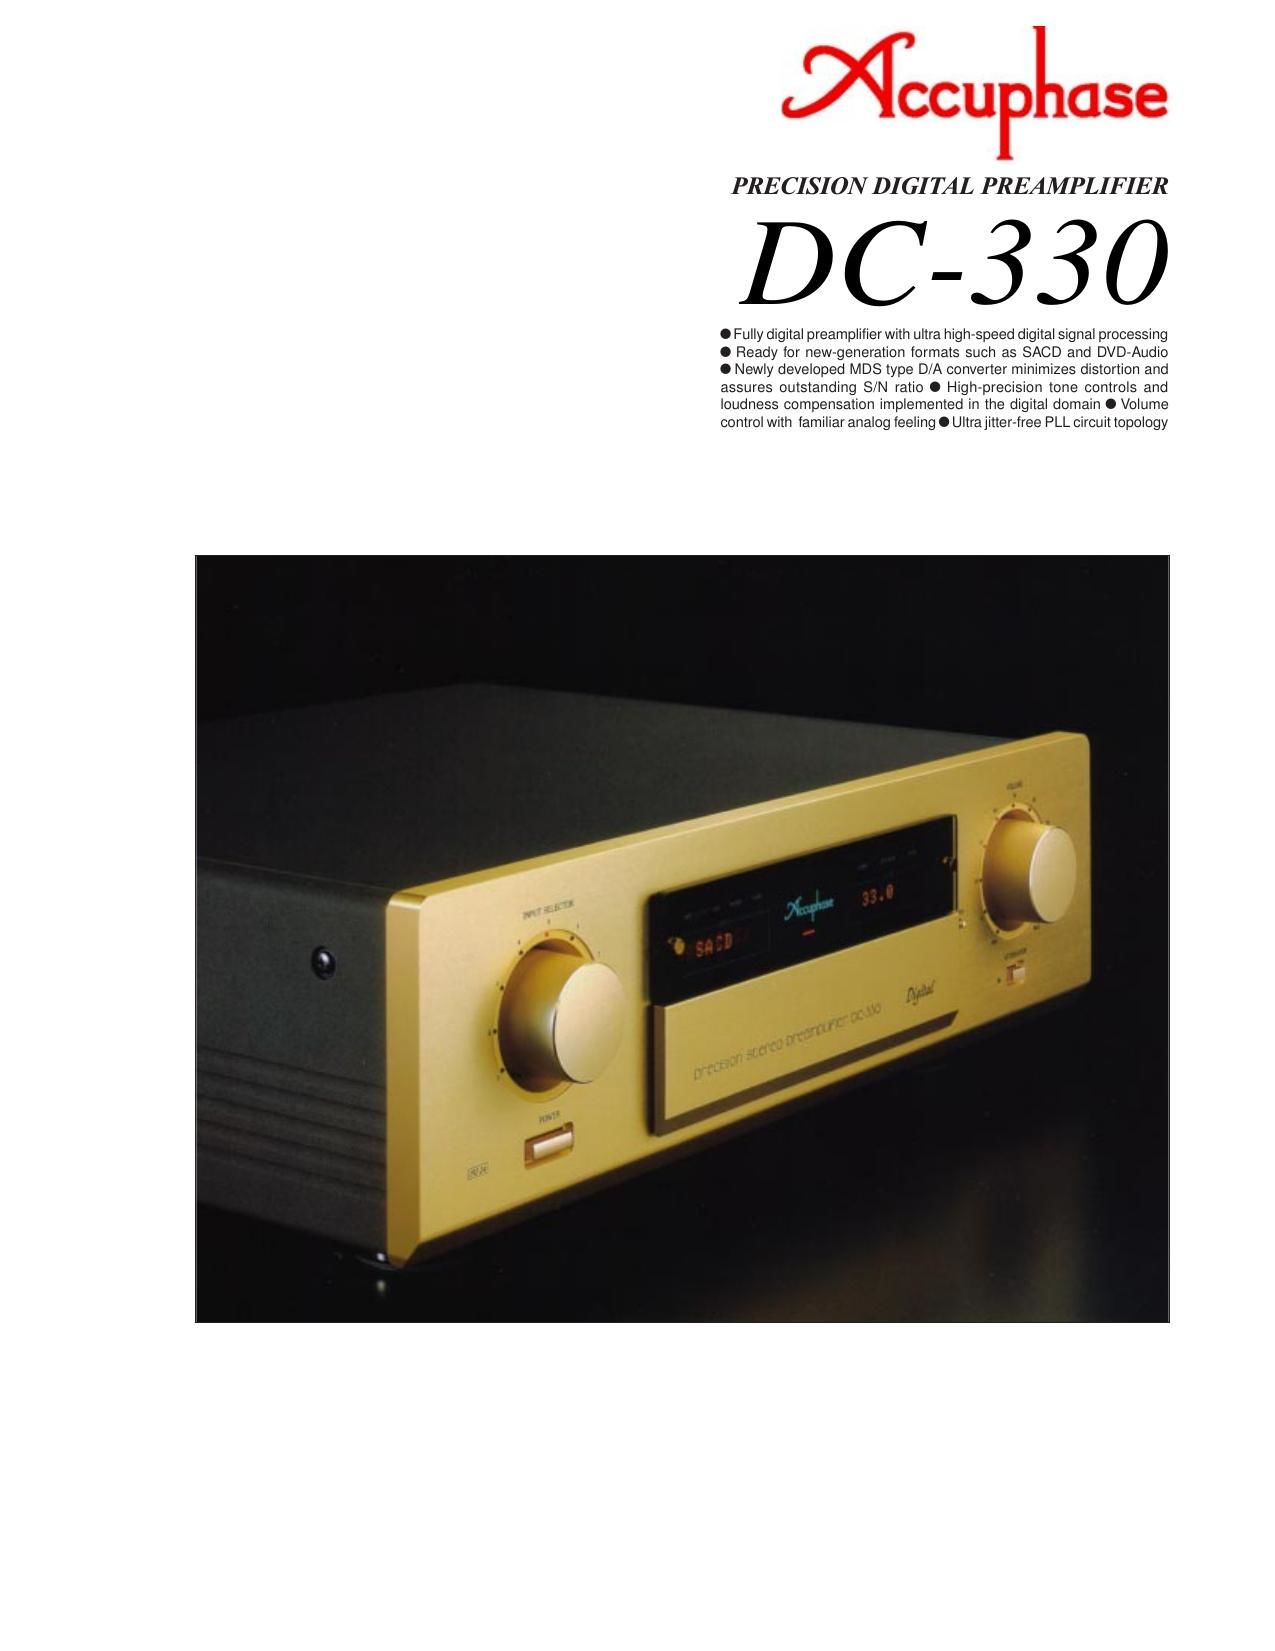 Accuphase DC 330 Brochure